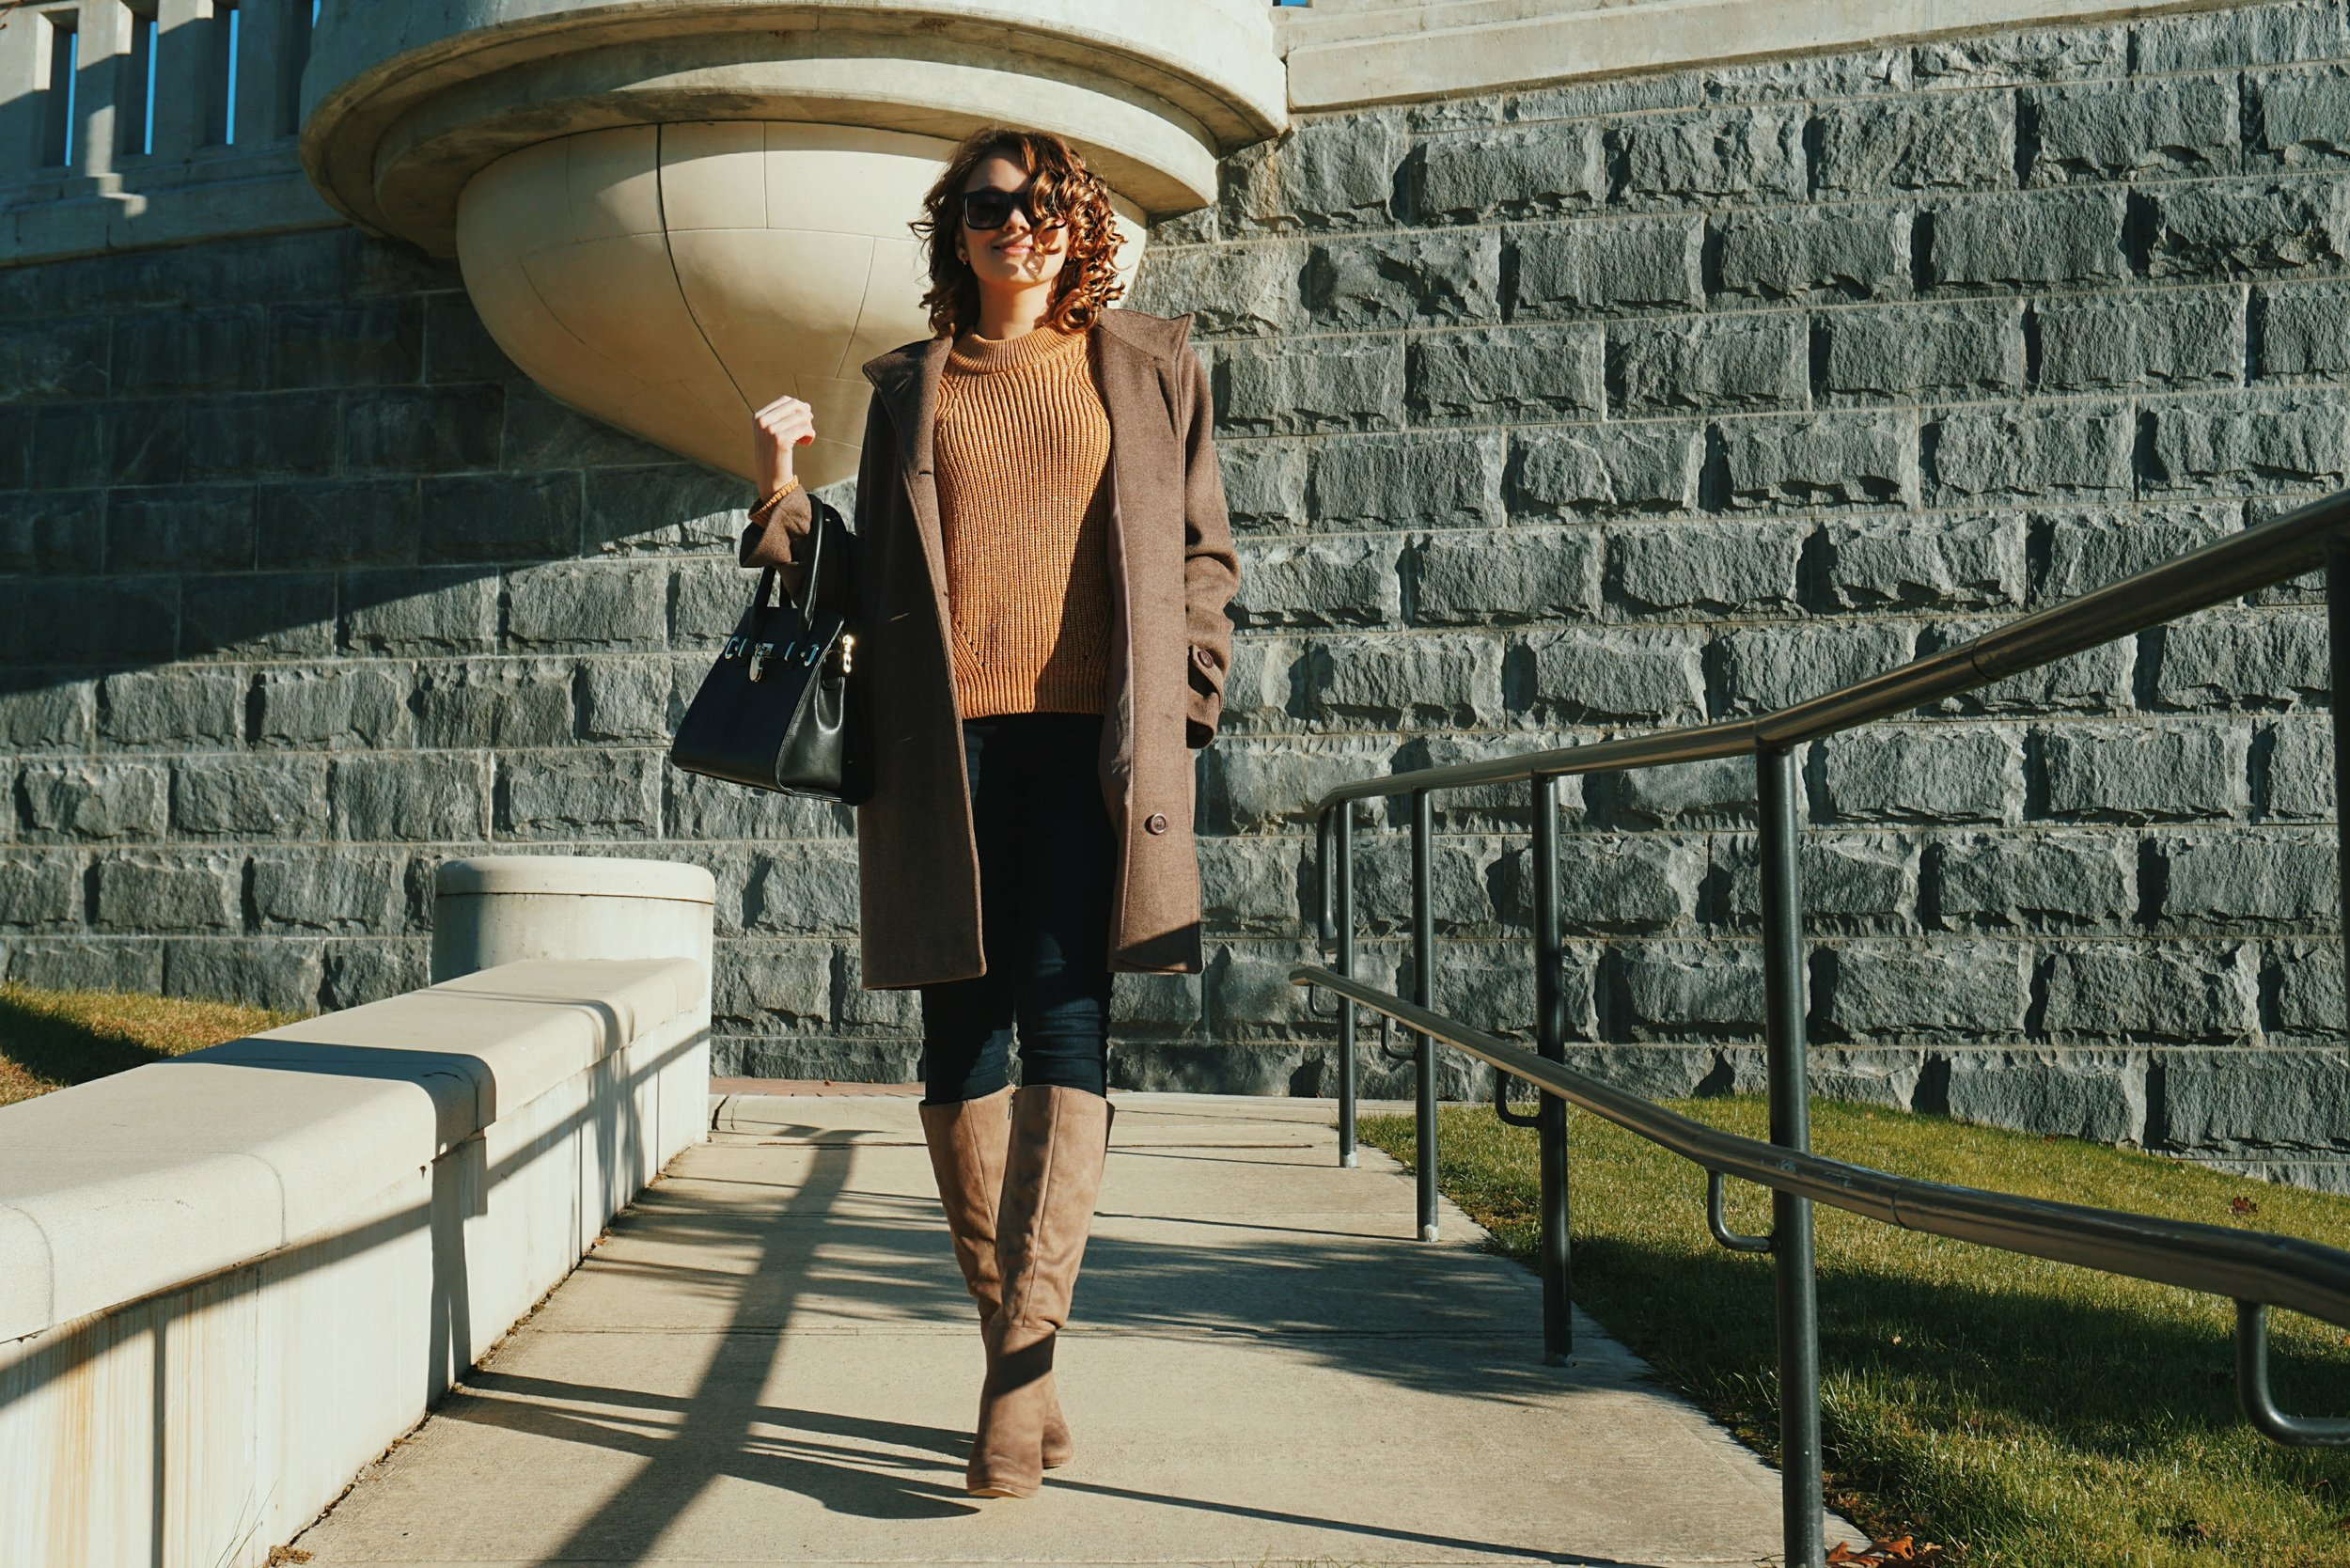 A fashion blogger walking away from a stoned wall, wearing high heeled brown boots, brown baggy coat, light brown sweater, and a black bag.